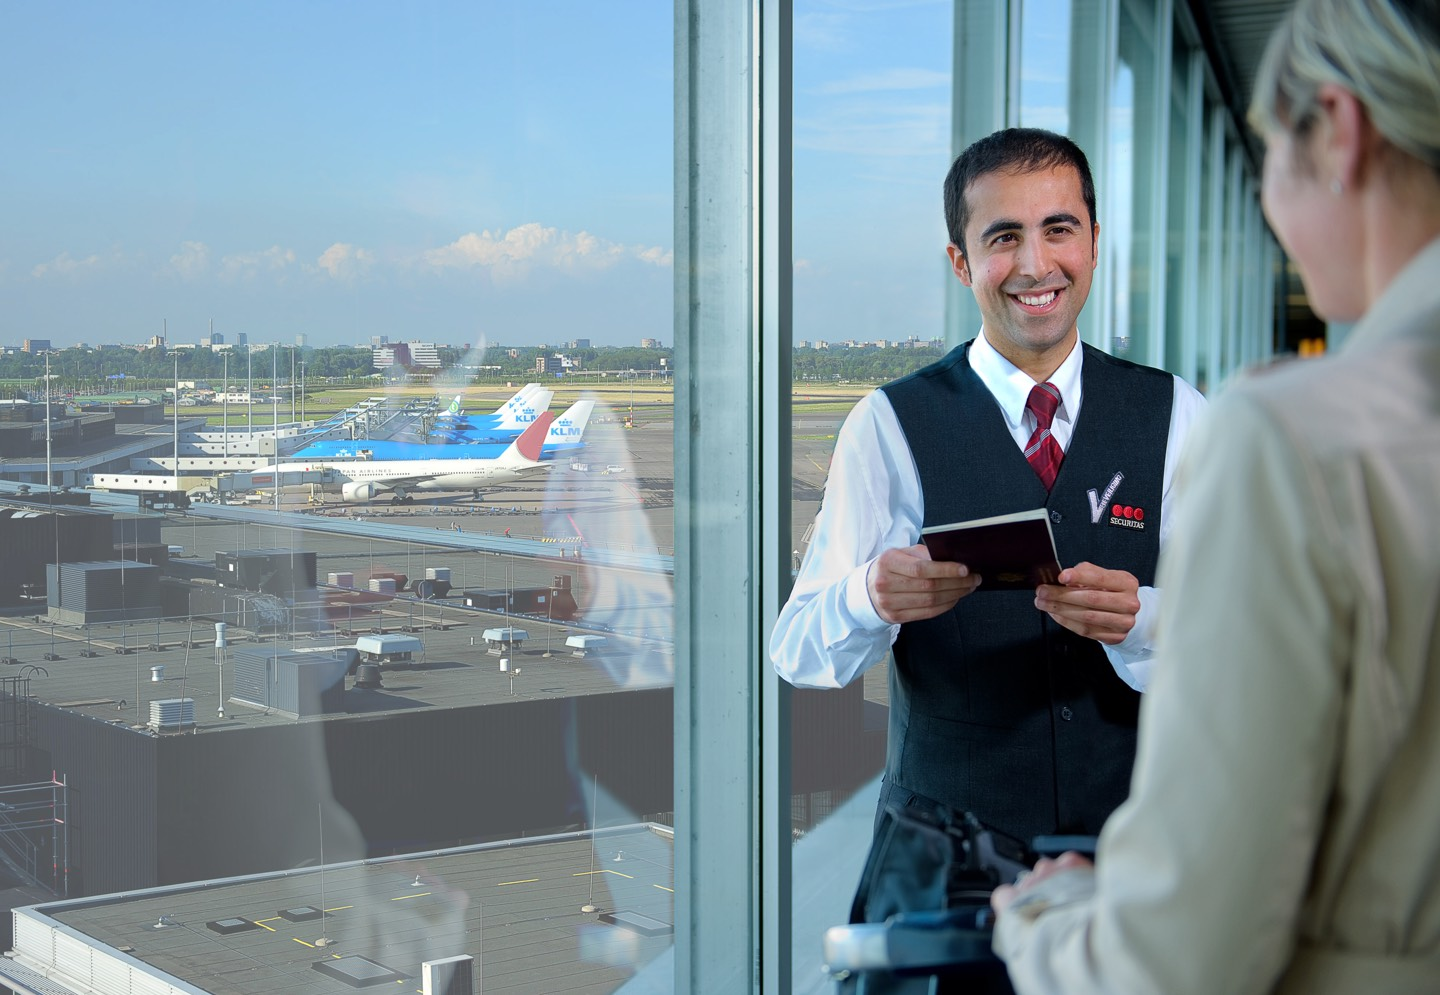 Securitas security officer talking to a customer at an airport